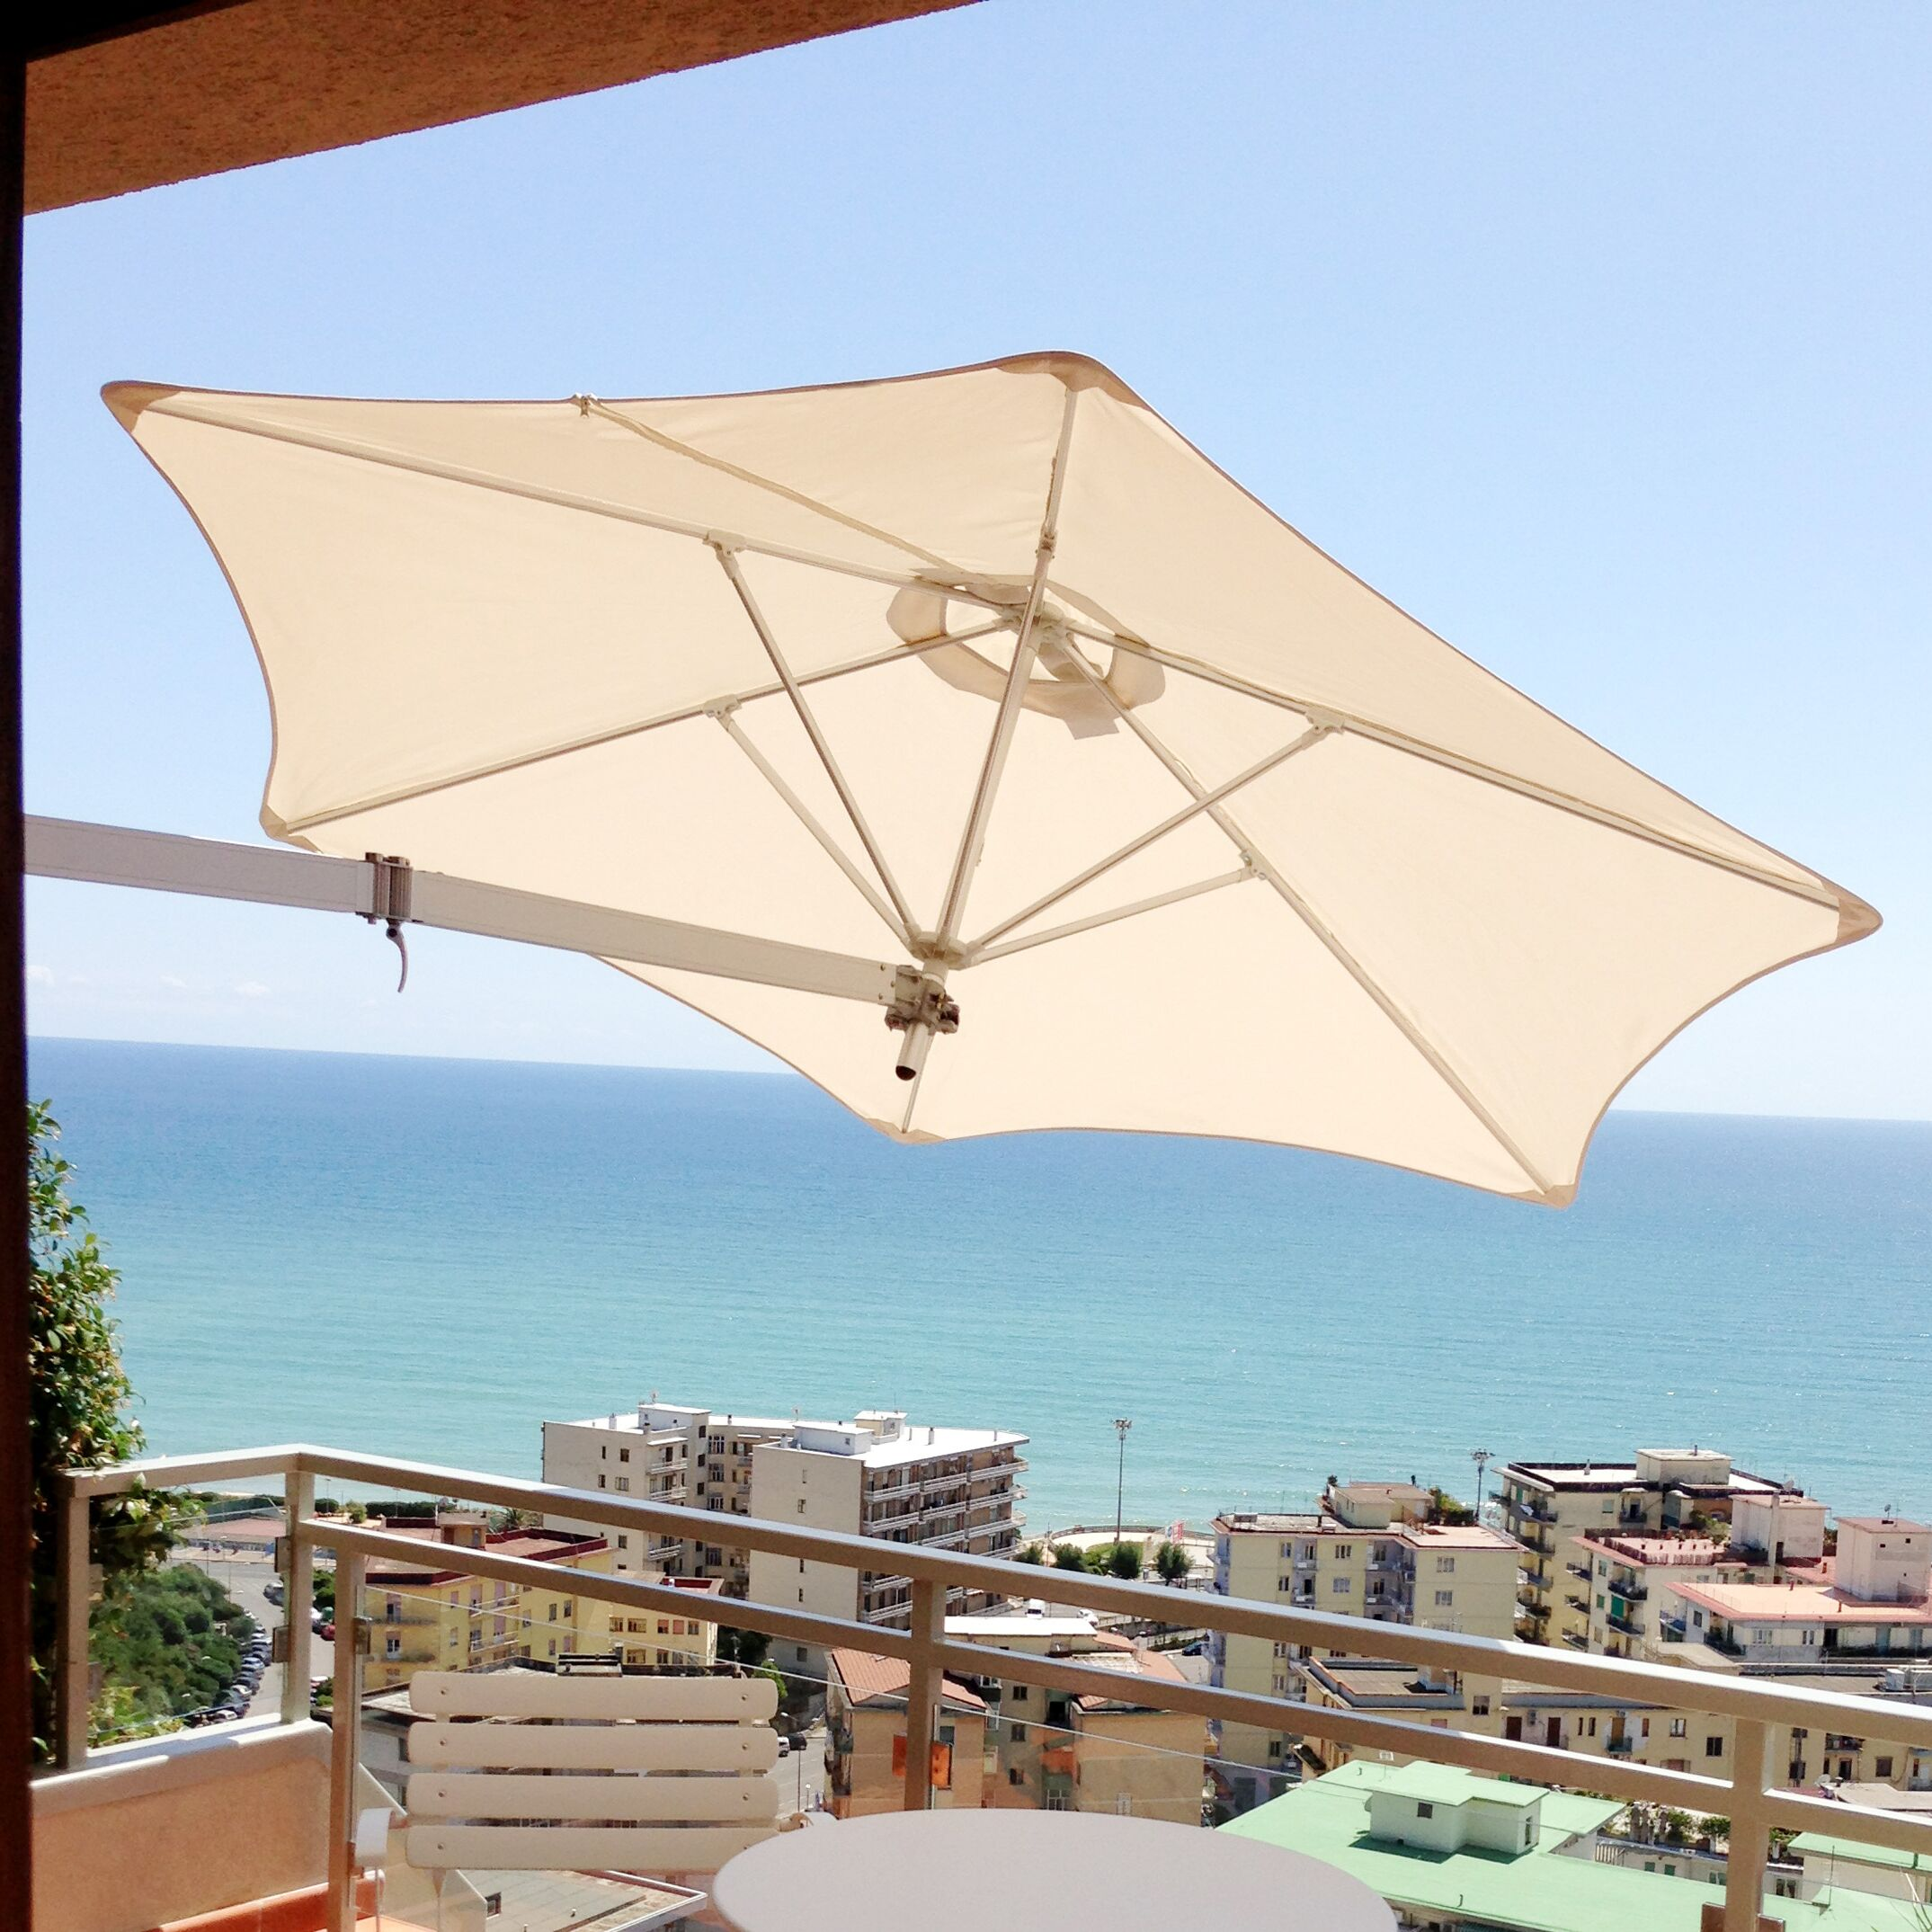 Paraflex 7' Wall Mount Umbrella Fabric: Sunbrella Acrylic - Taupe